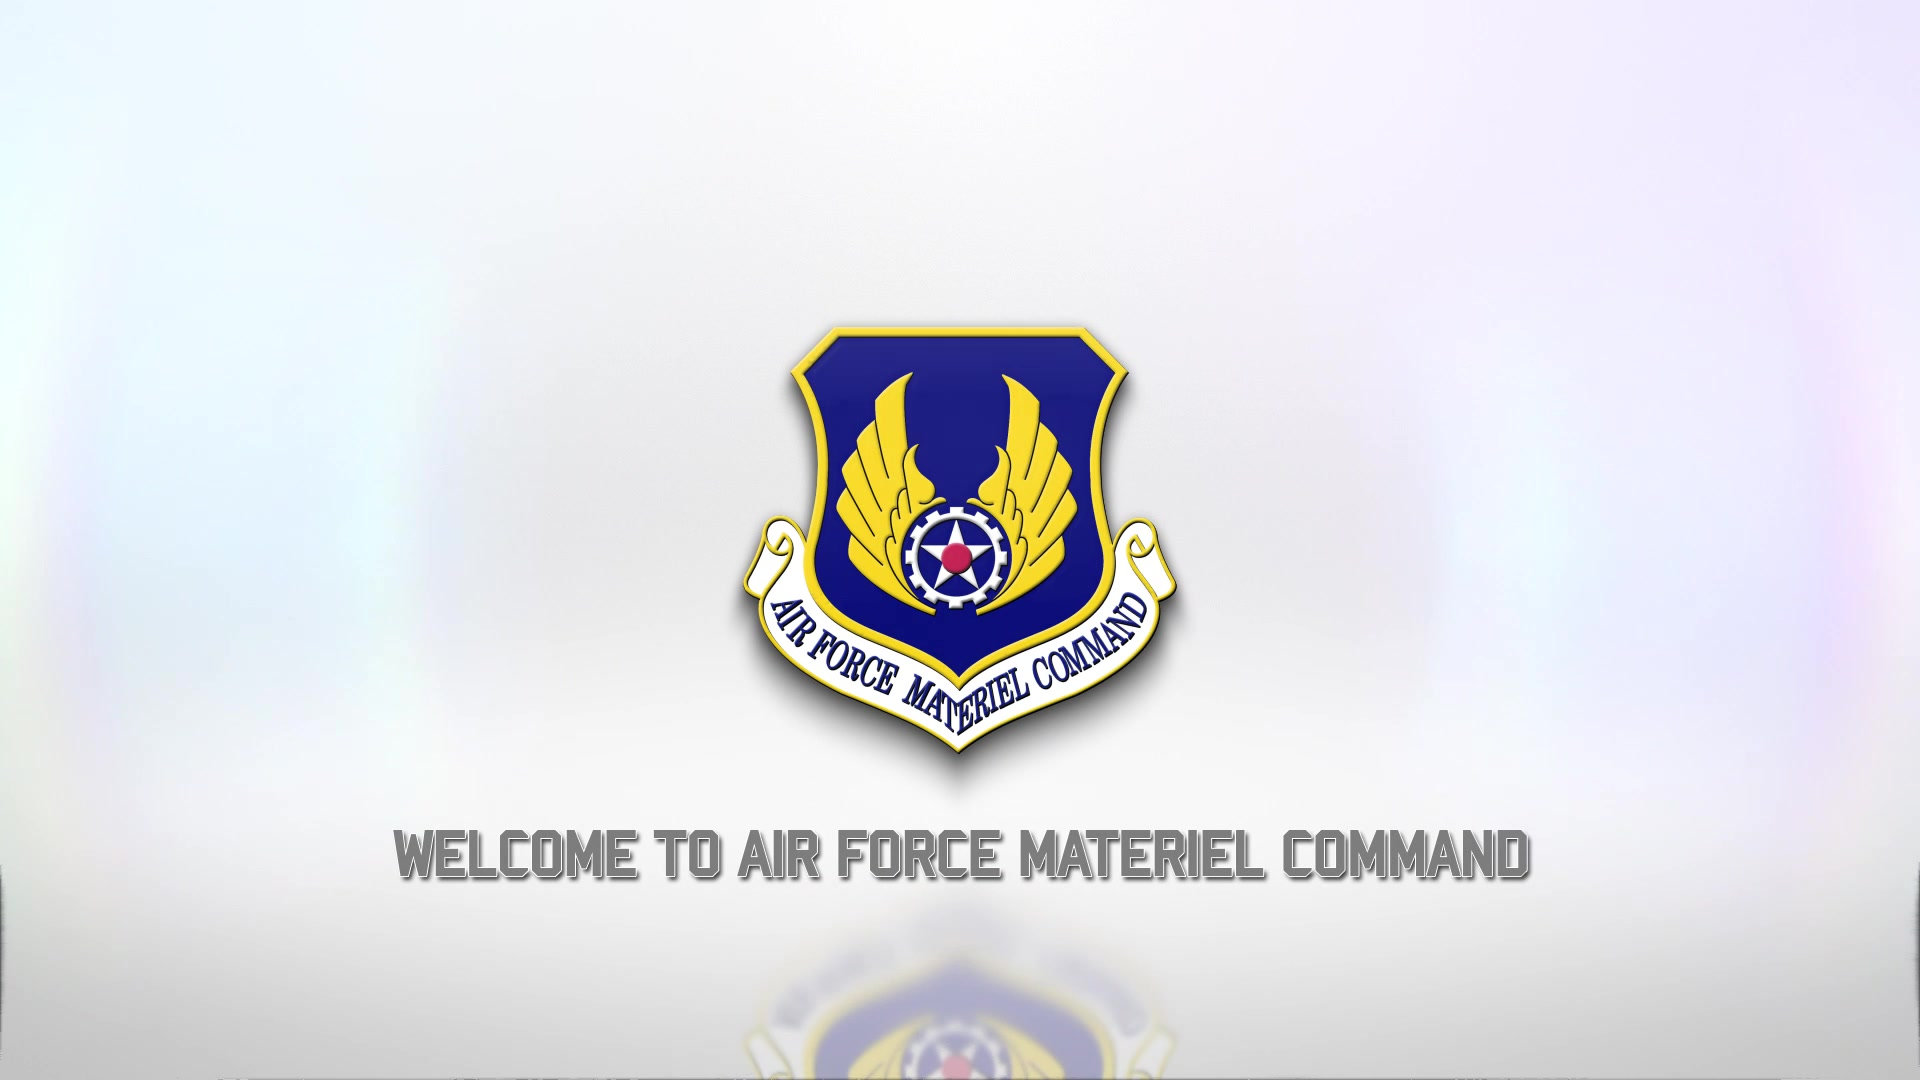 Gen. Arnold W. Bunch Jr., Commander, Air Force Materiel Command, welcomes new employees to the command.  AFMC delivers war-winning expeditionary capabilities to the warfighter through development and transition of technology, professional acquisition management, exacting test and evaluation, and world-class sustainment of all Air Force weapon systems. (U.S. Air Force video by Ryan Law)